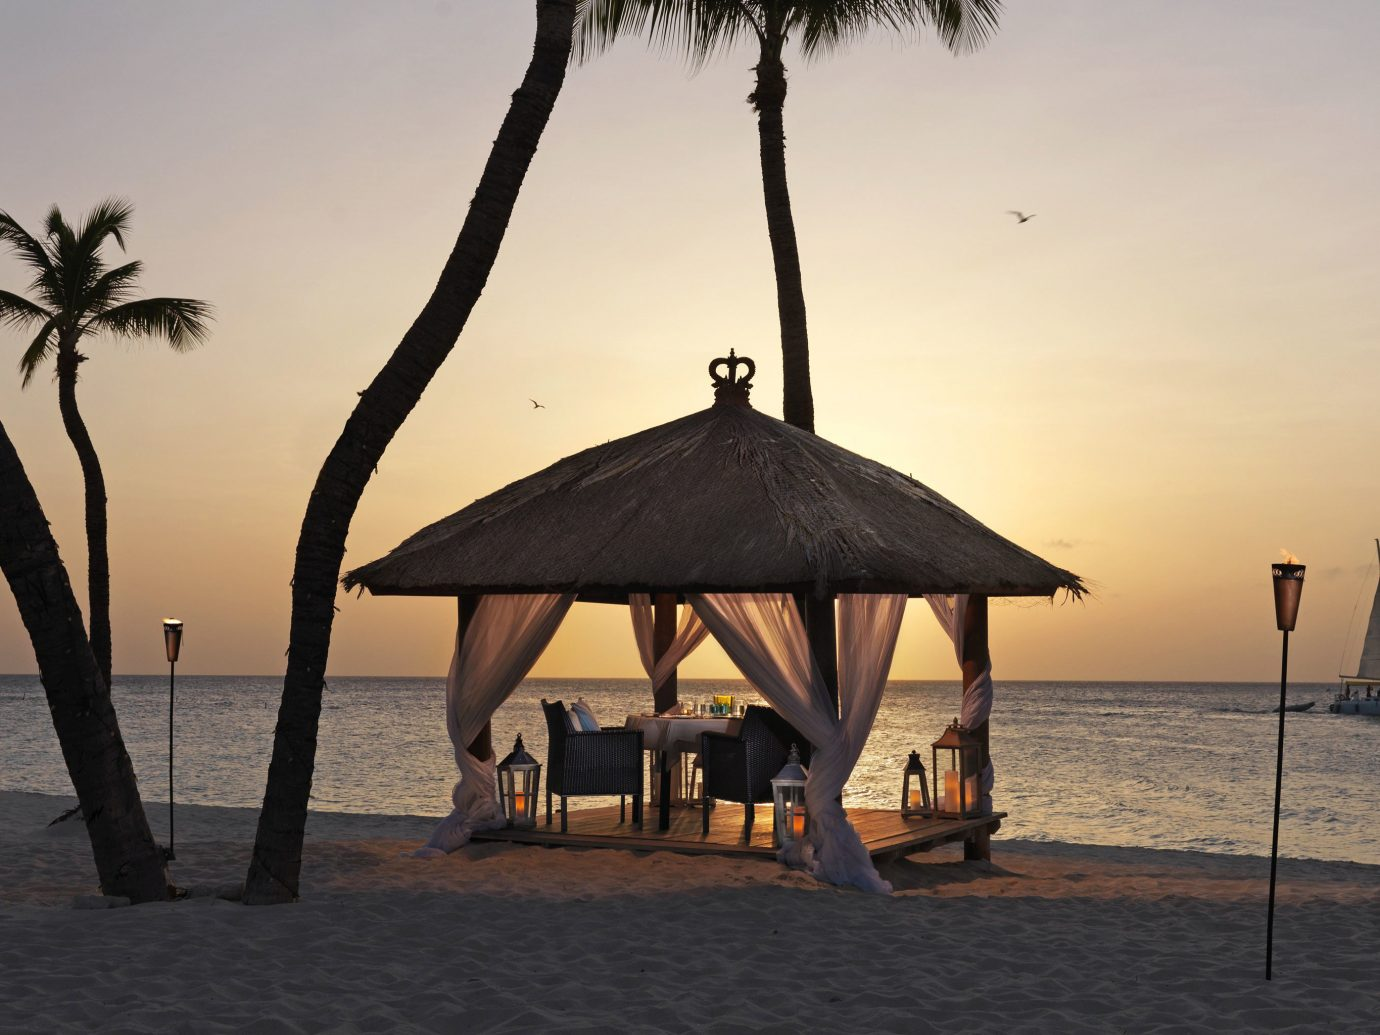 Beach Beachfront Hotels Living Lounge Luxury Ocean sky water outdoor chair Sea shore Sunset vacation morning evening tree Nature palm dusk sand travel sailing vessel shade sandy day